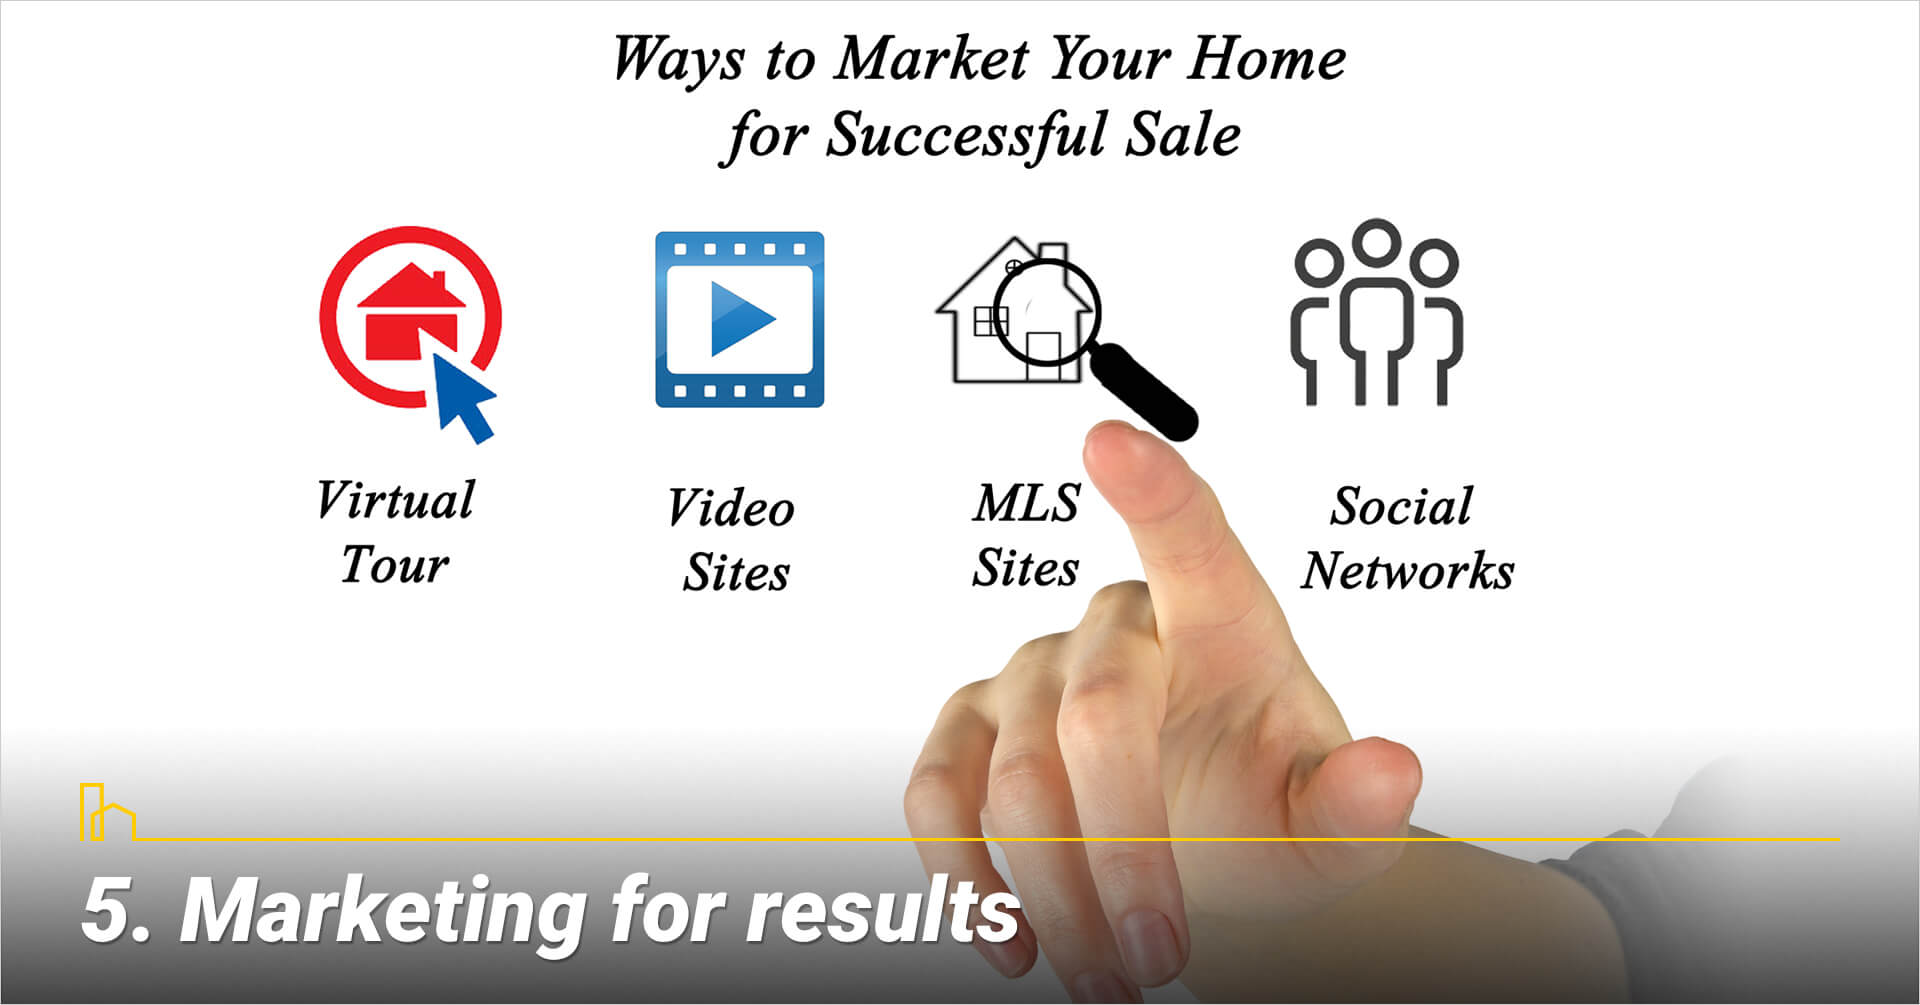 Marketing for results